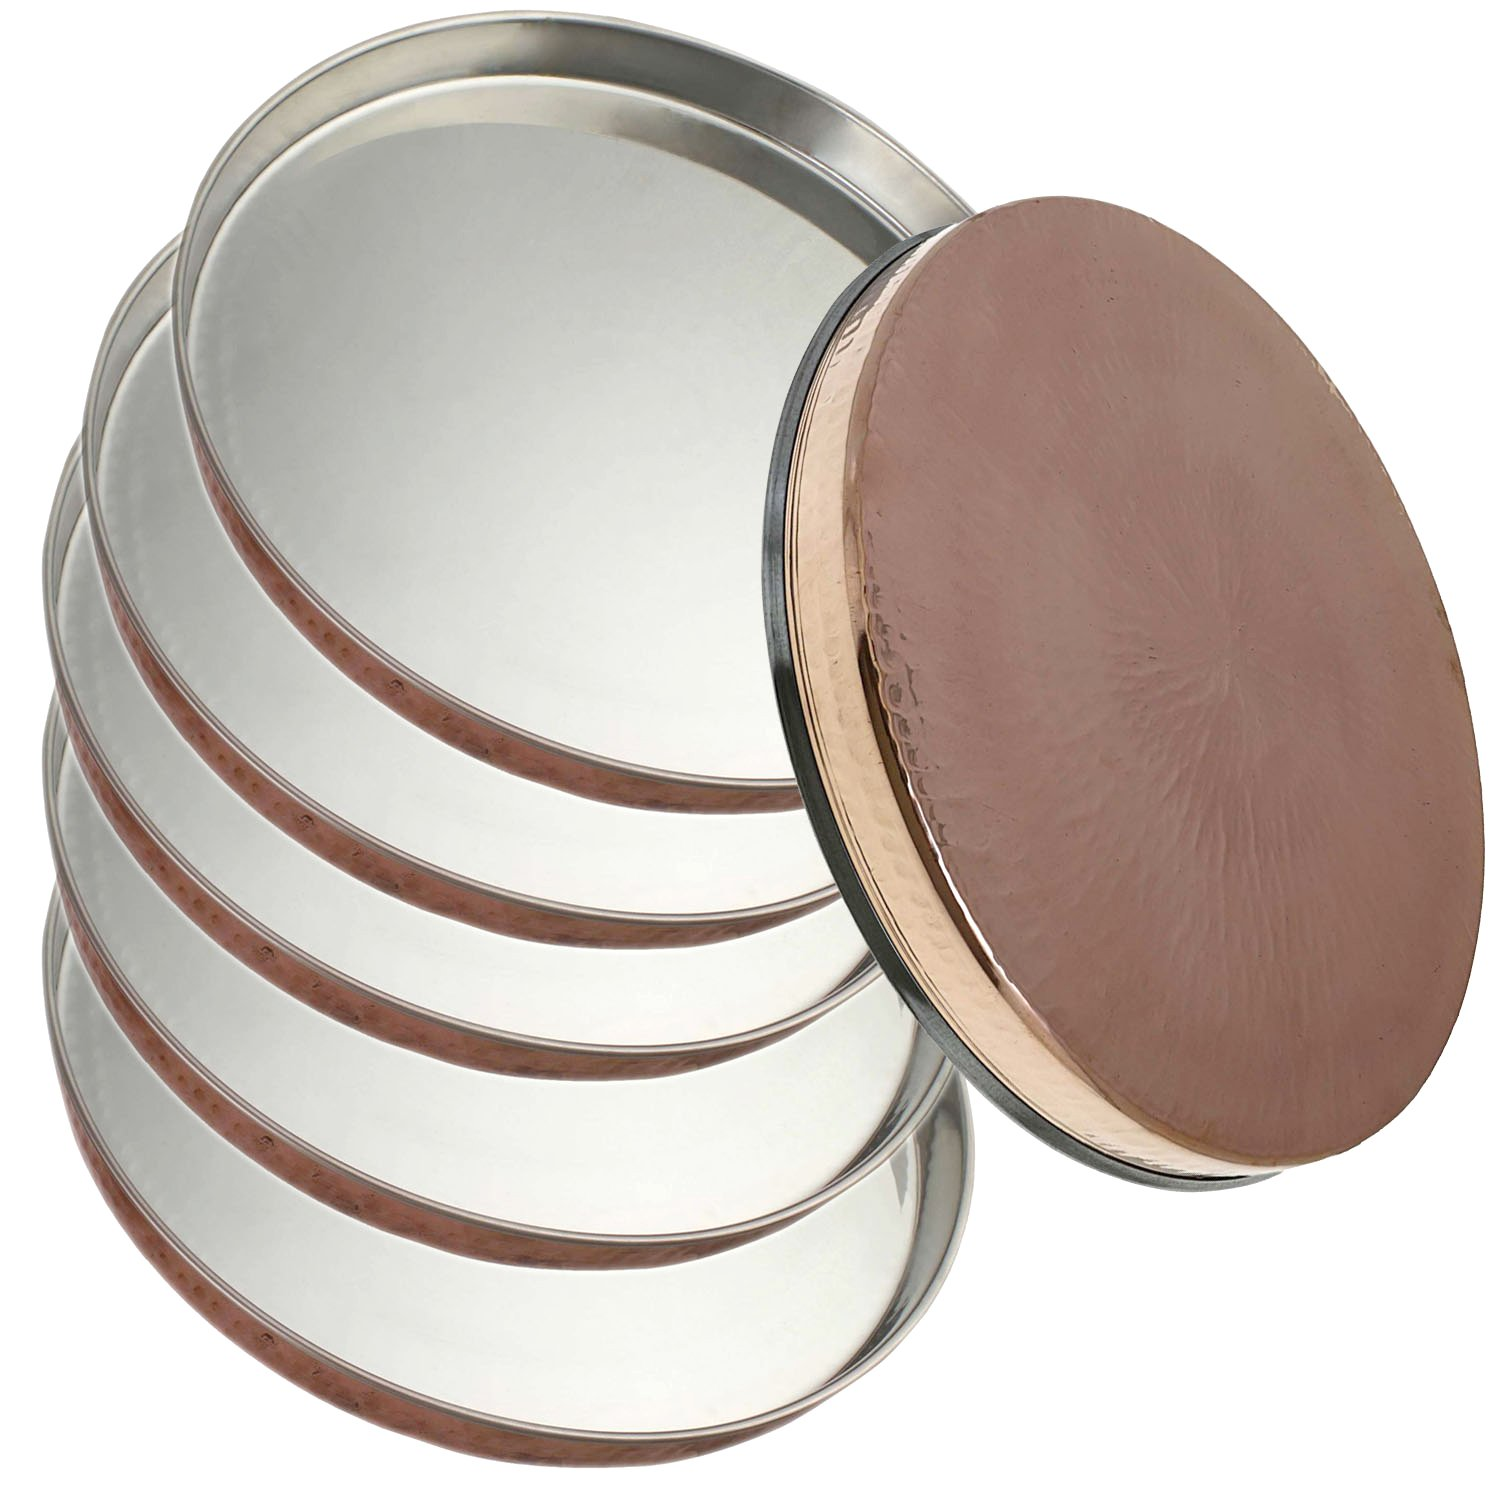 Service for 6 - Prisha India Craft Dinner Plate Thali Tableware Dinnerware for Indian Food and Dishes Stainless Steel Copperware Thali Set